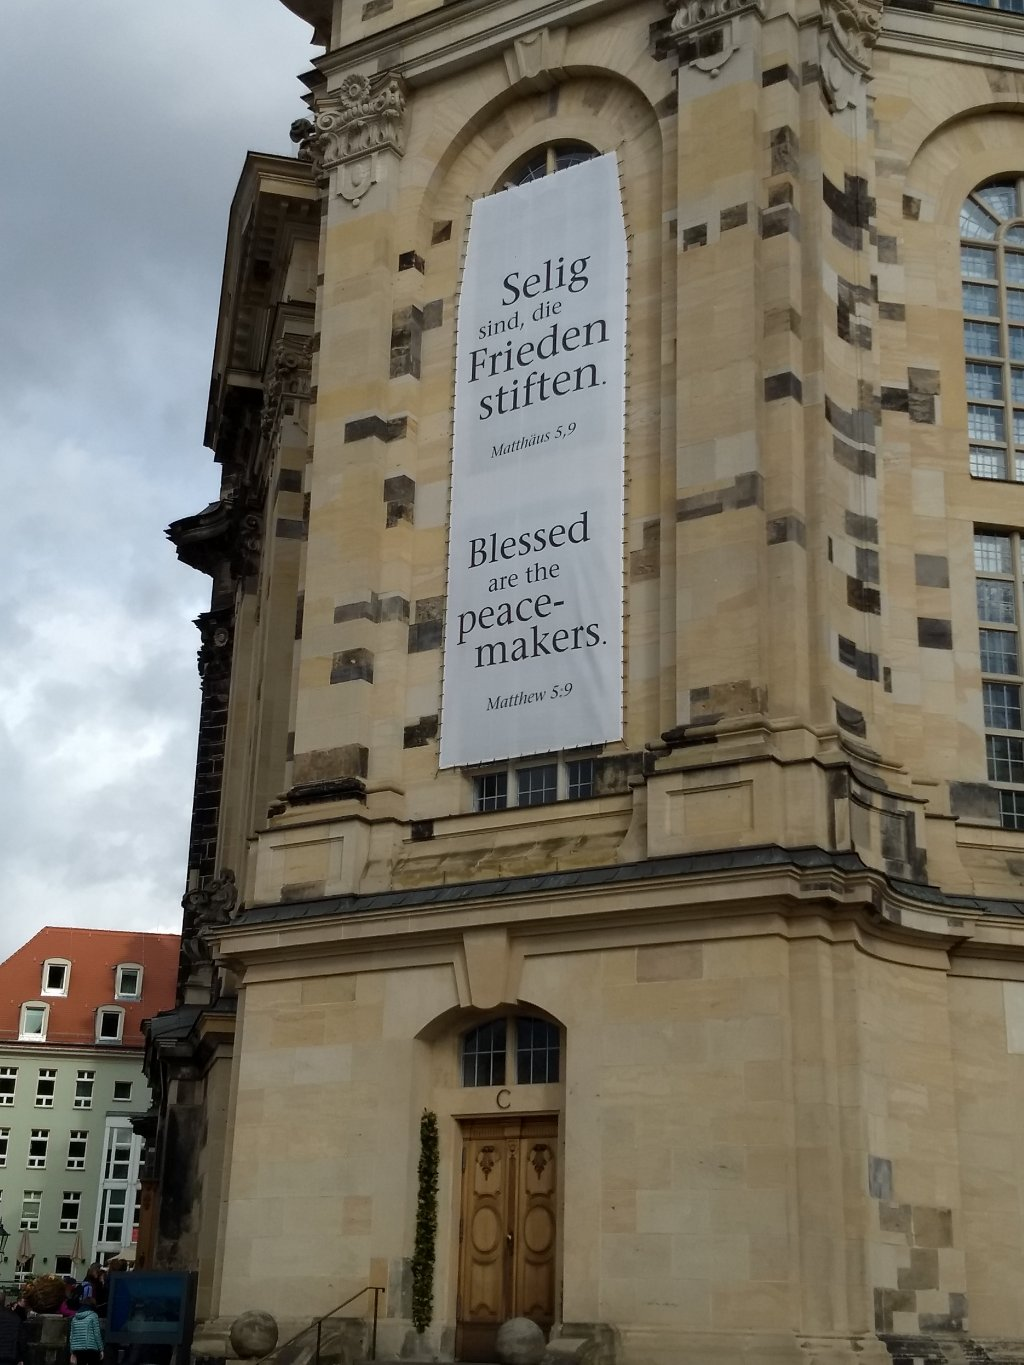 Dresdens Frauenkirche with the Blessed are the Peacemakers sign  Photo Emma Wallis